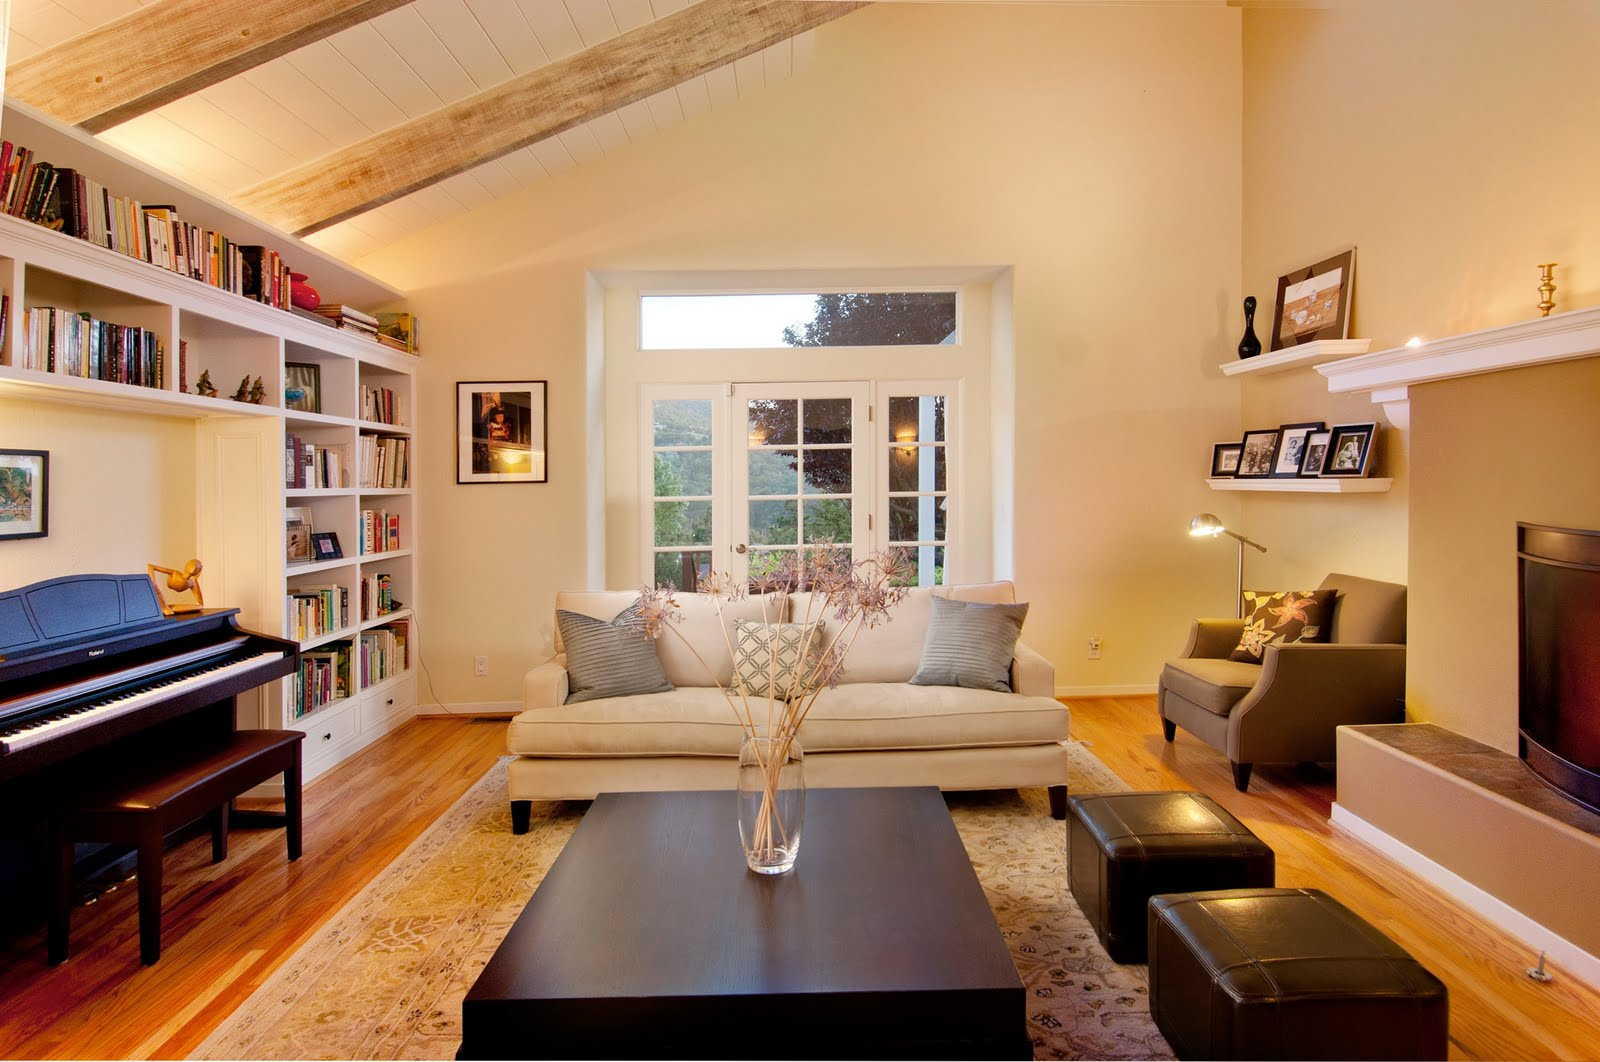 Carmel valley house sunny spacious and serene - Leather sofa arrangement in living room ...